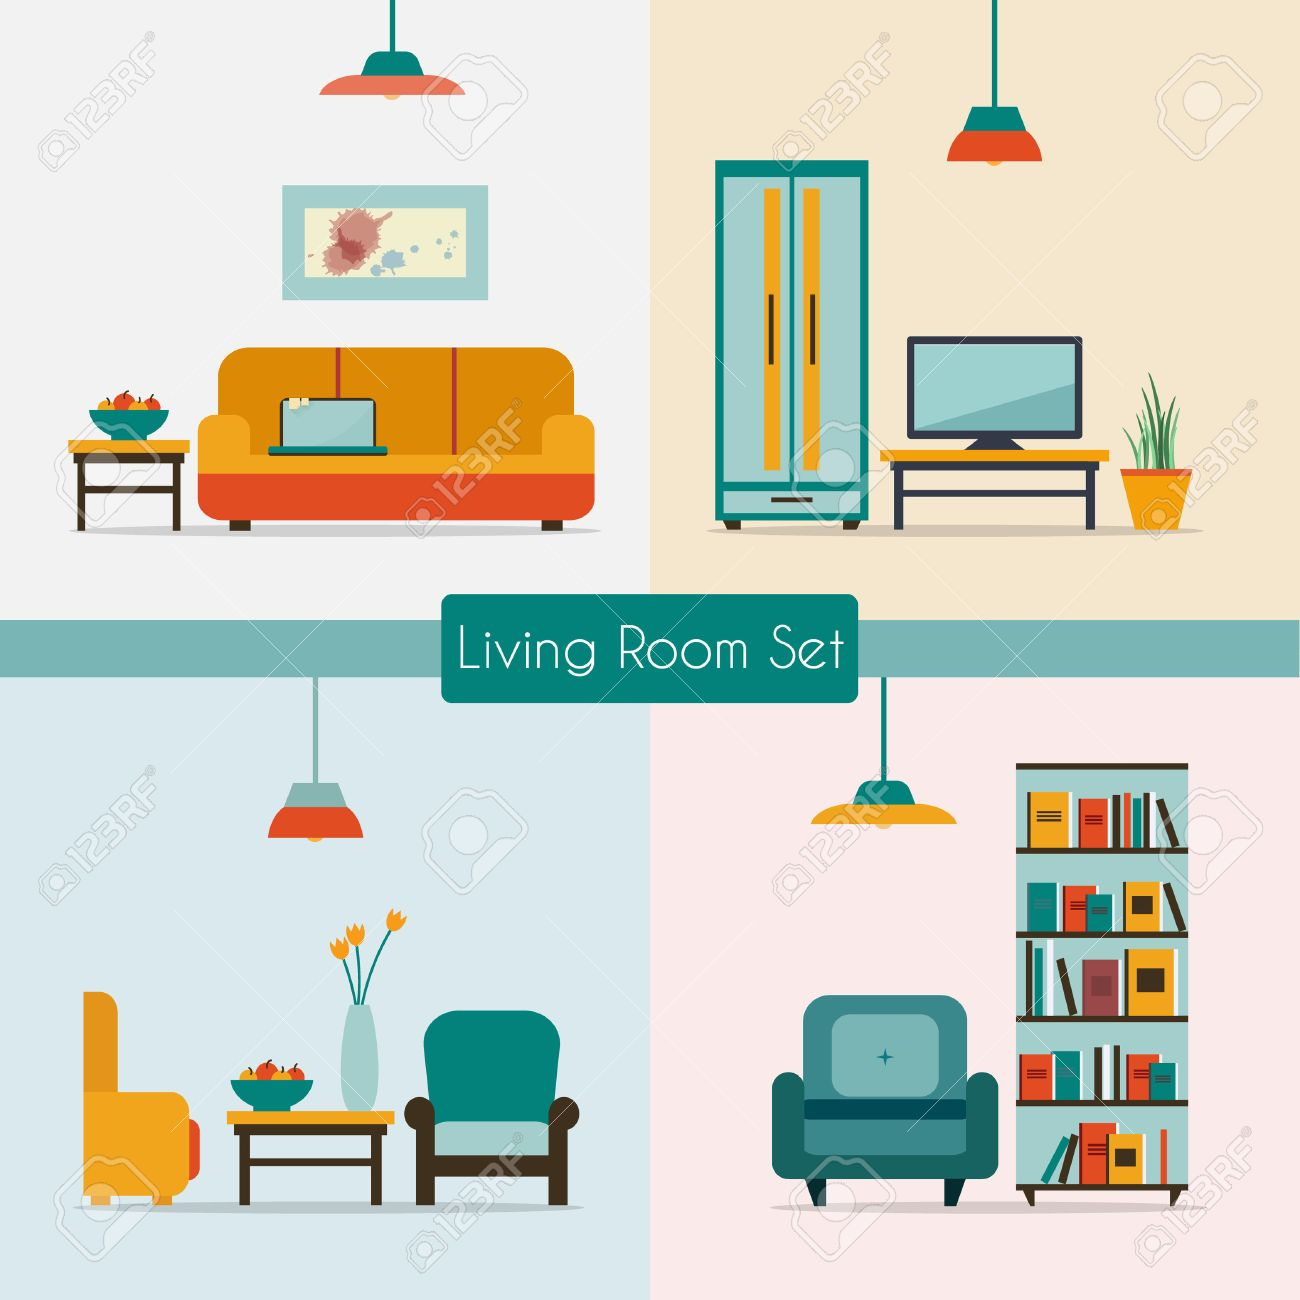 Living Room With Furniture And Long Shadows Flat Style Vector Illustration Stock